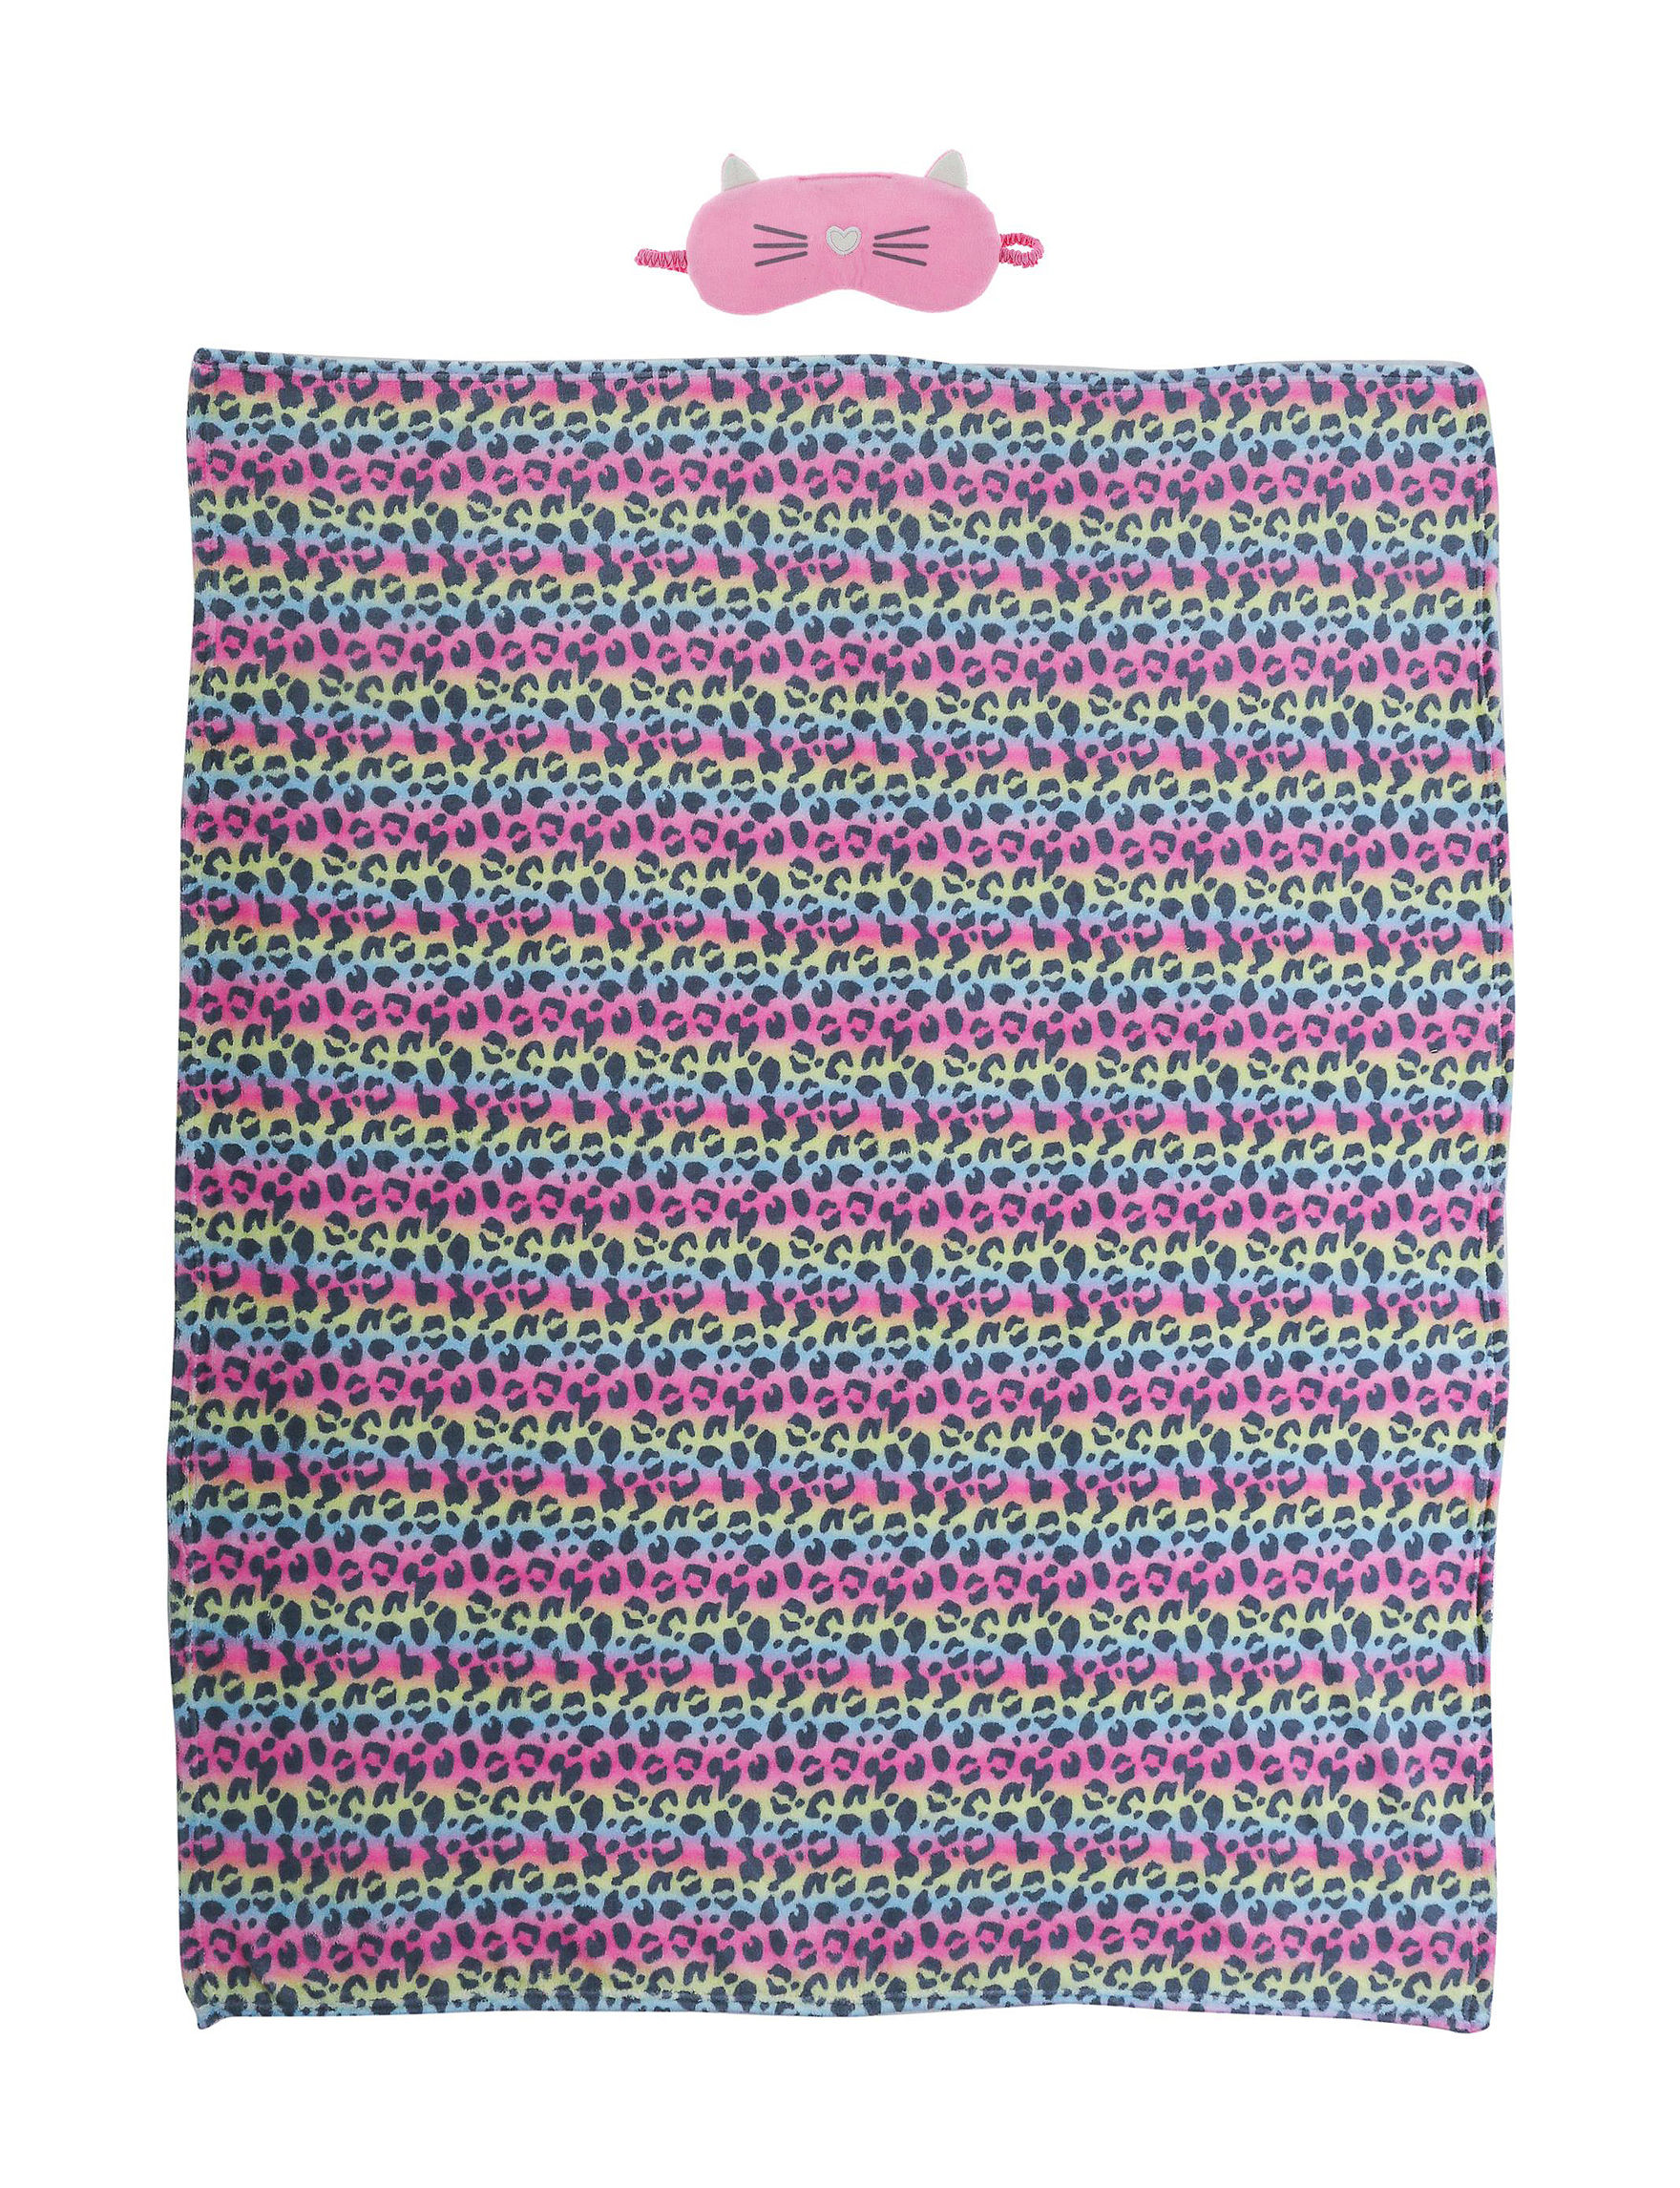 Capelli Pink / Multi Blankets & Throws